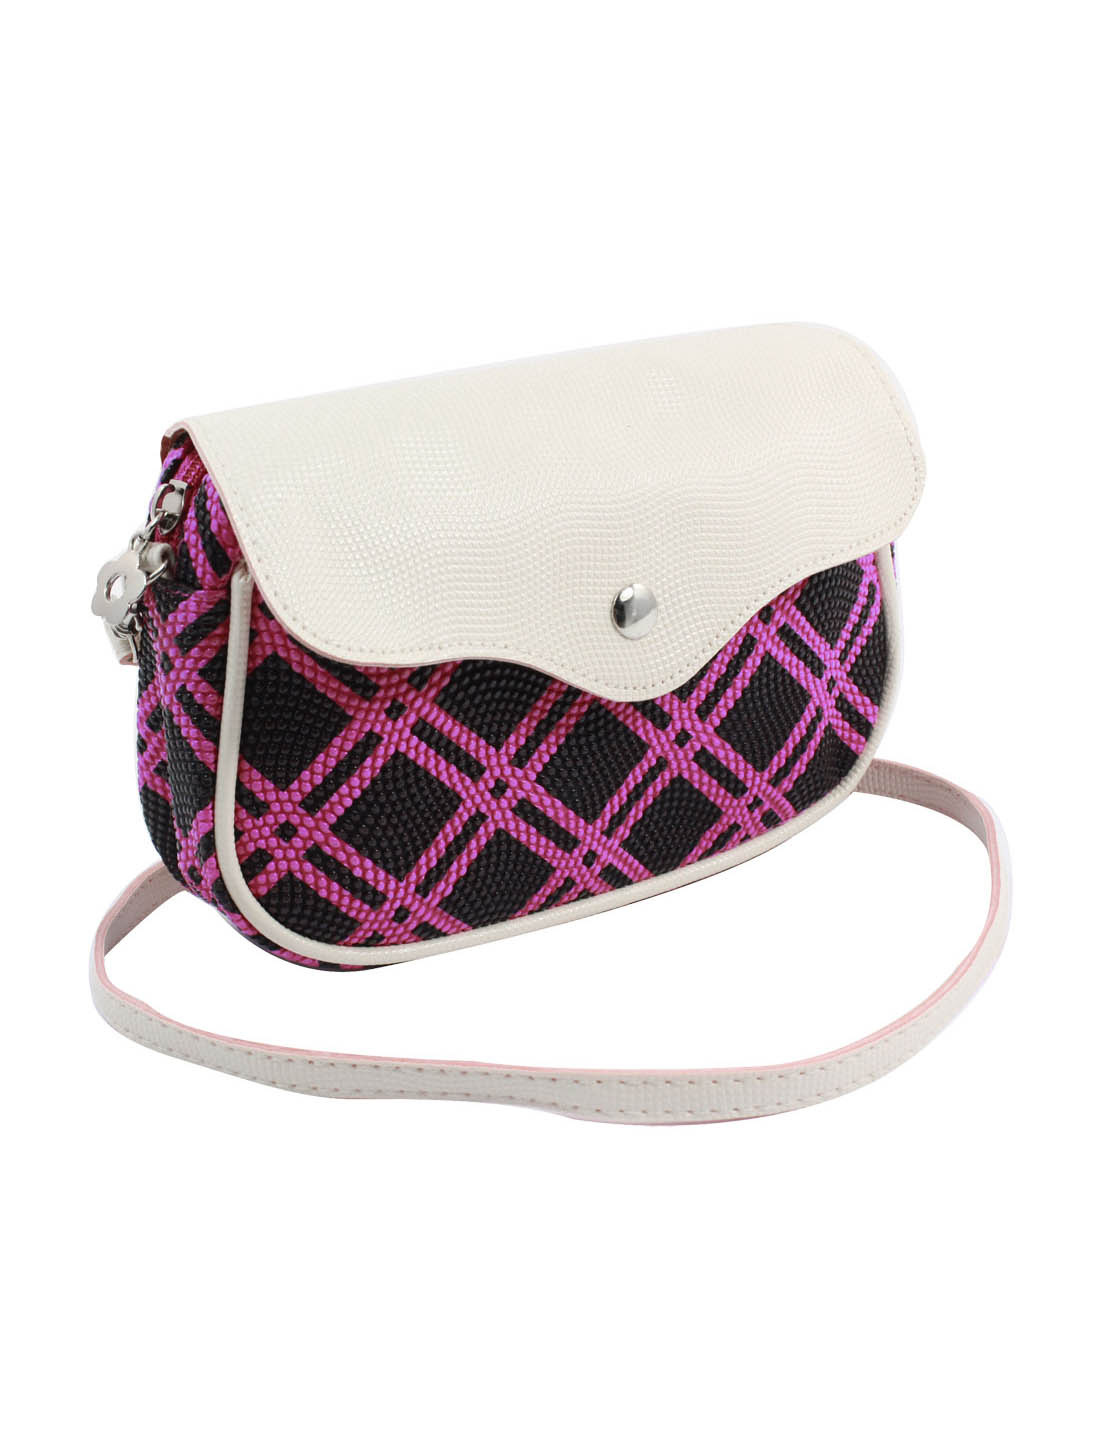 Women 2 Pockets Magnet Button Zipper Closure Plaid Pattern Faux Leather Wallet Purse Bag Black Fuchsia w Strap